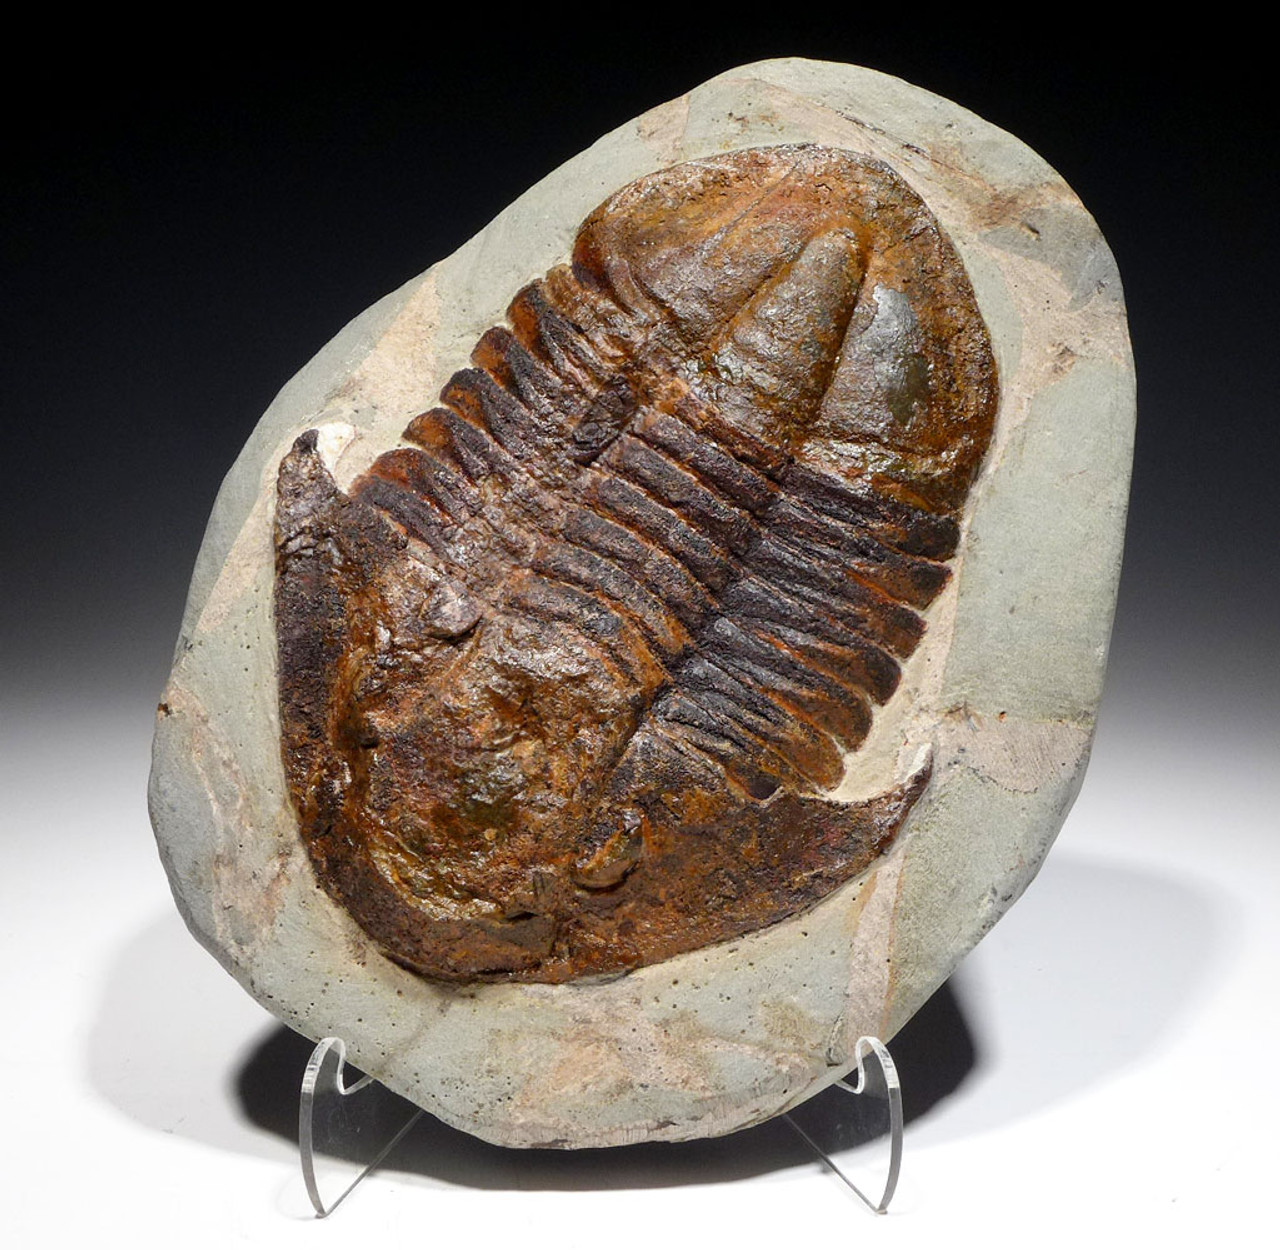 PREMIUM ASAPHID TRILOBITE WITH STUNNING COLORS AND CHOICE PRESERVATION *TRRD01